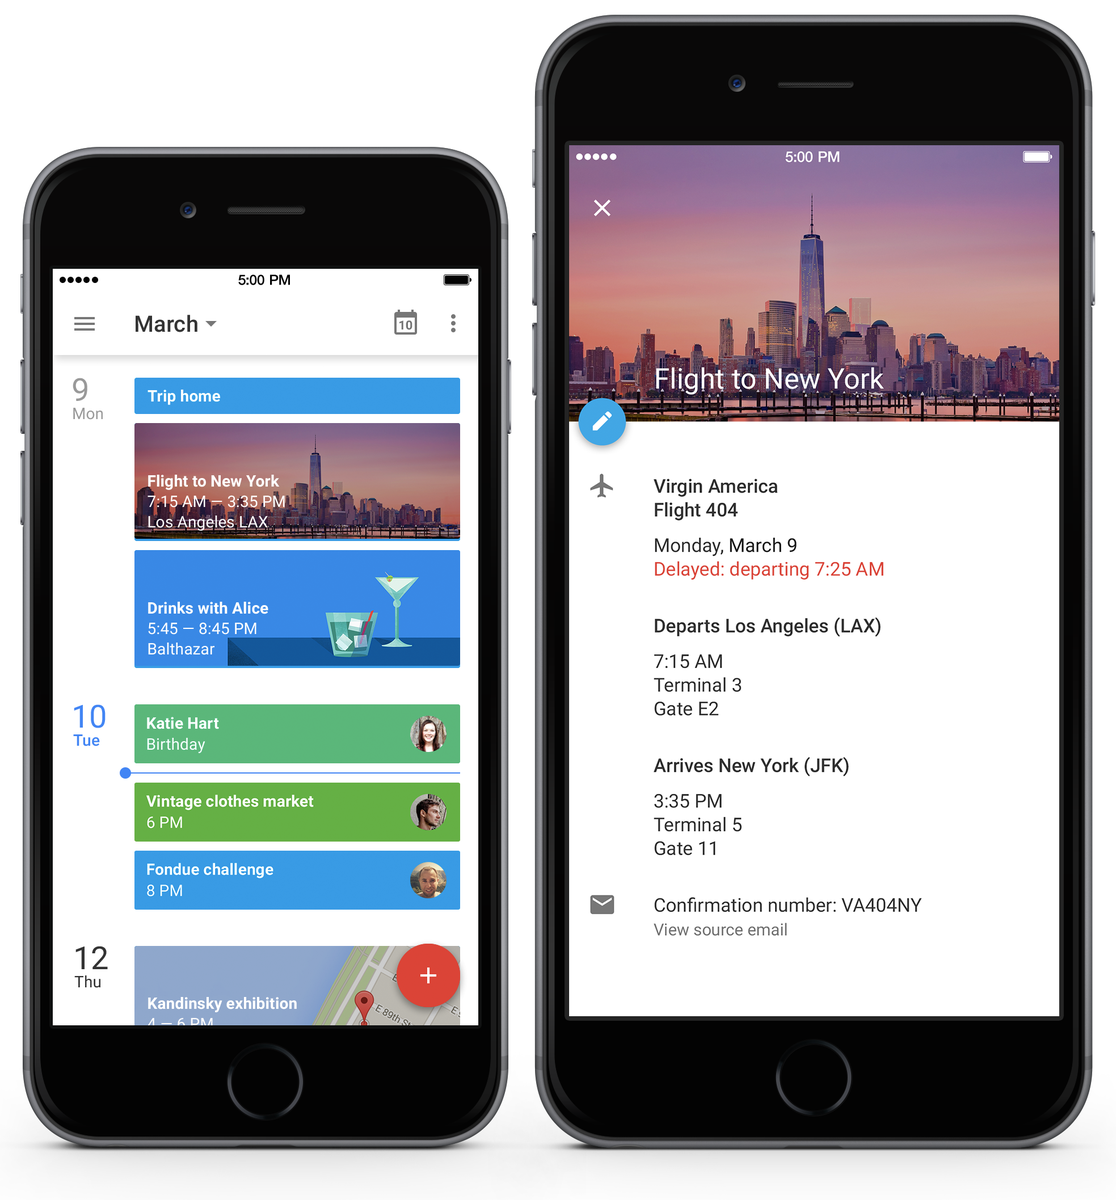 Google Calendar for iPhone. It's about time. http://t.co/1Ye9rfG7Z9 http://t.co/bxwQqwyzBI